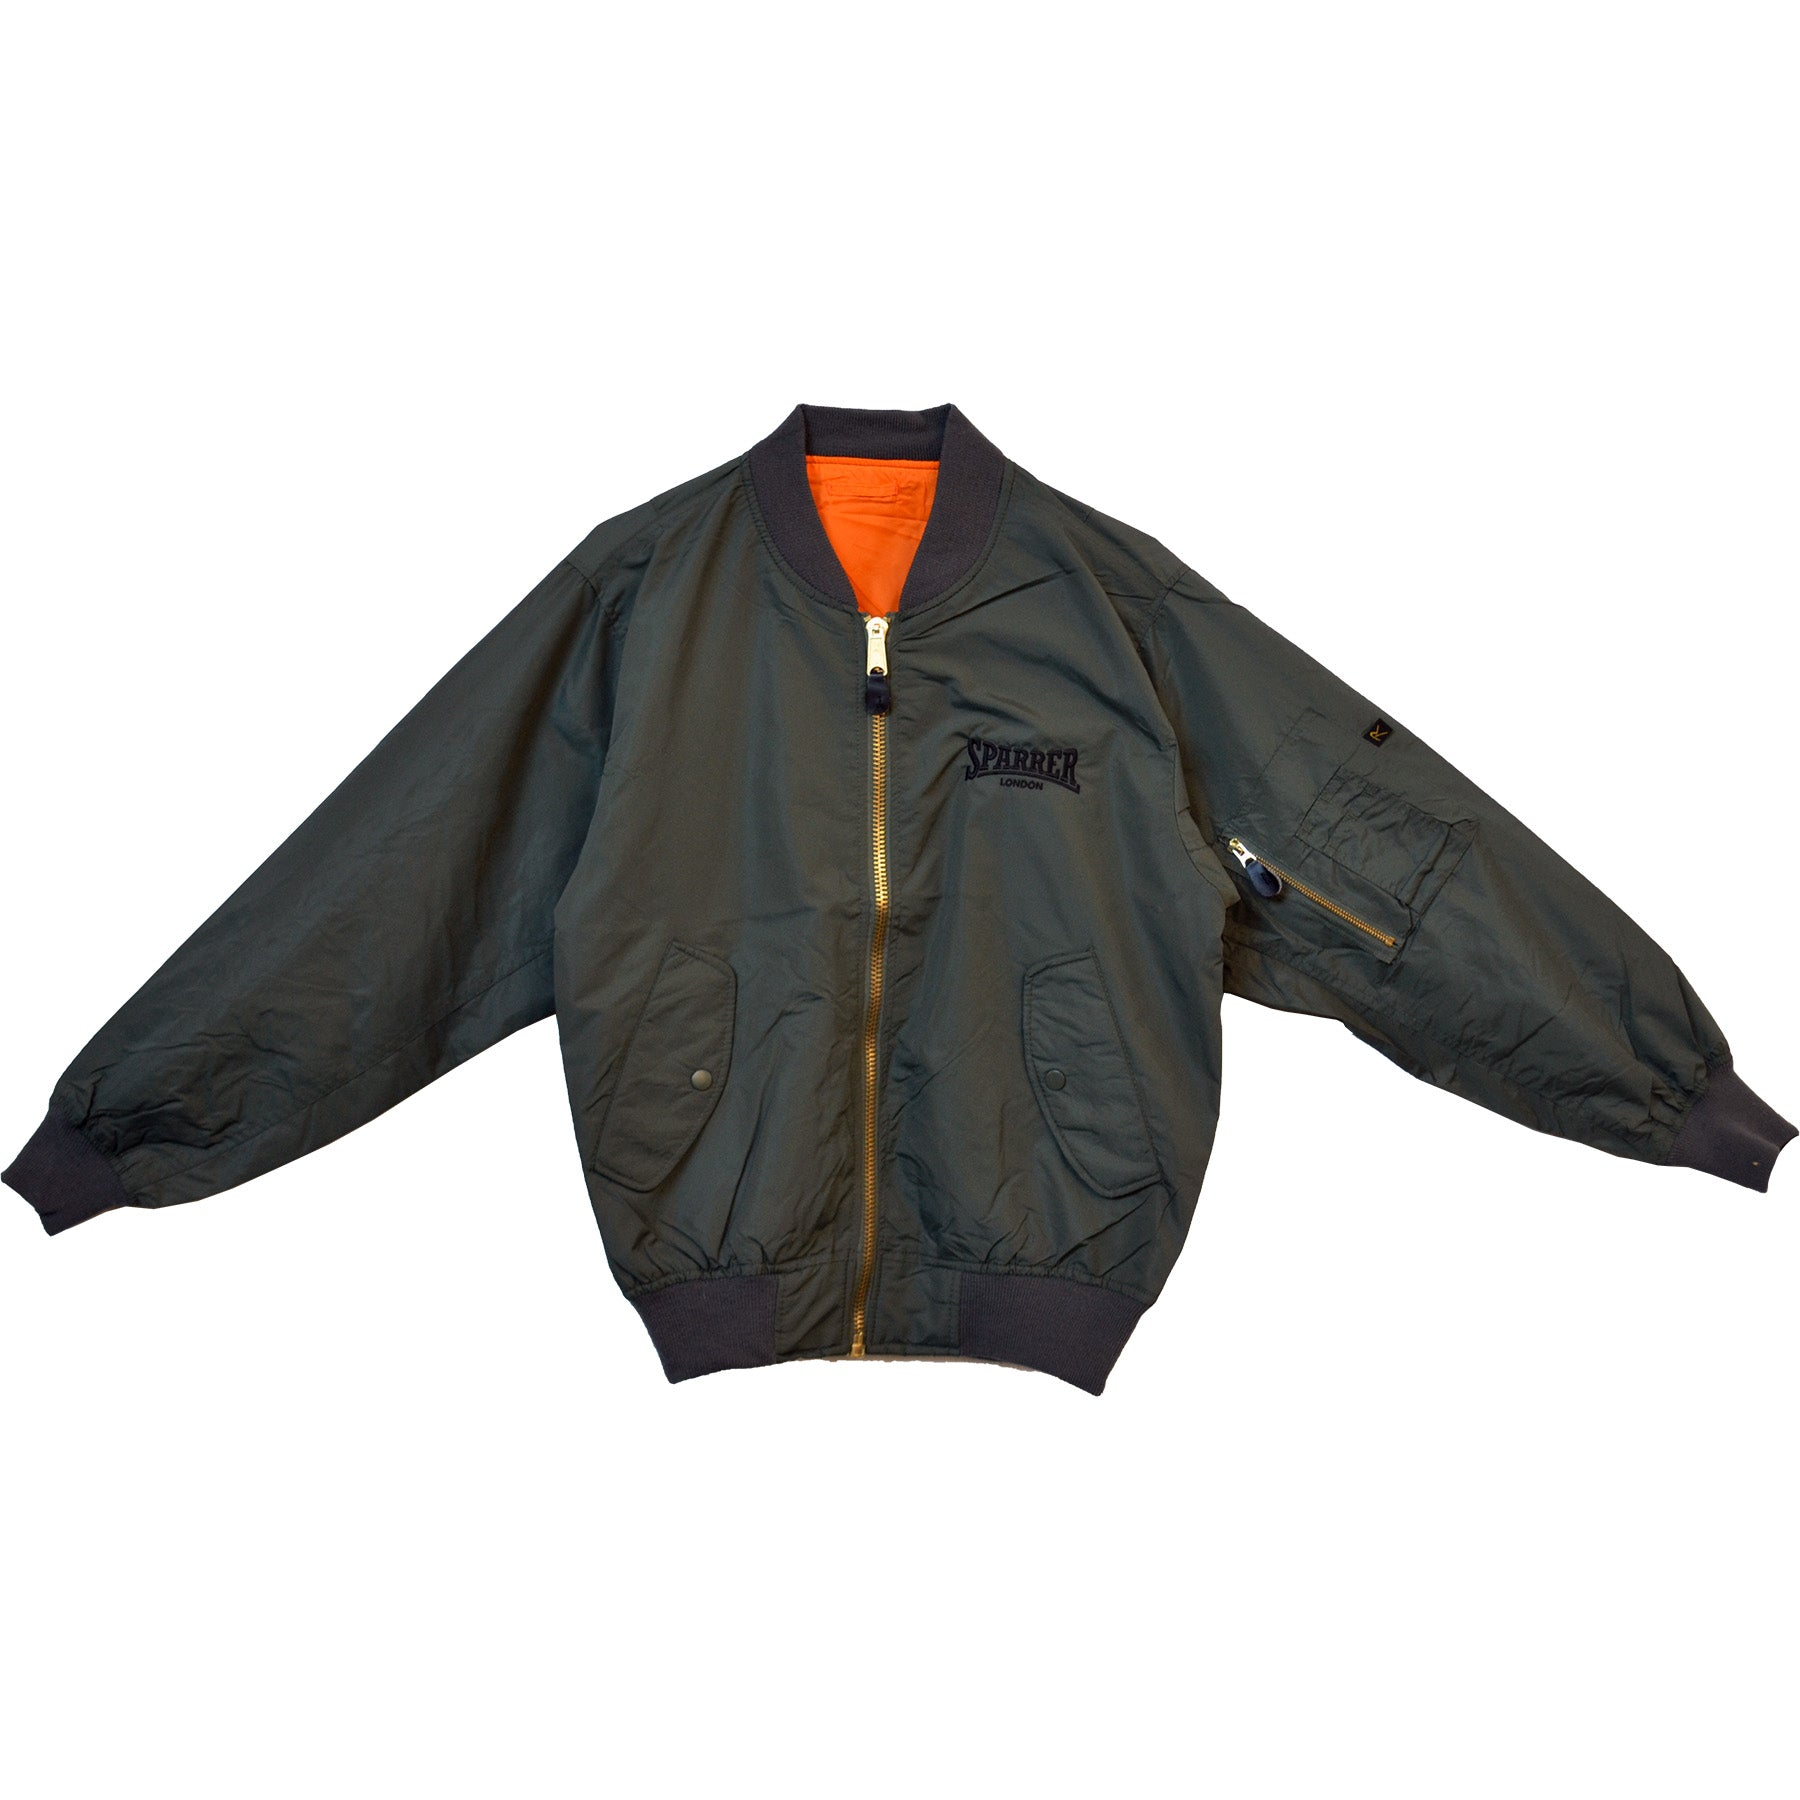 Cock Sparrer - Sparrer London - Bomber Jacket - Green